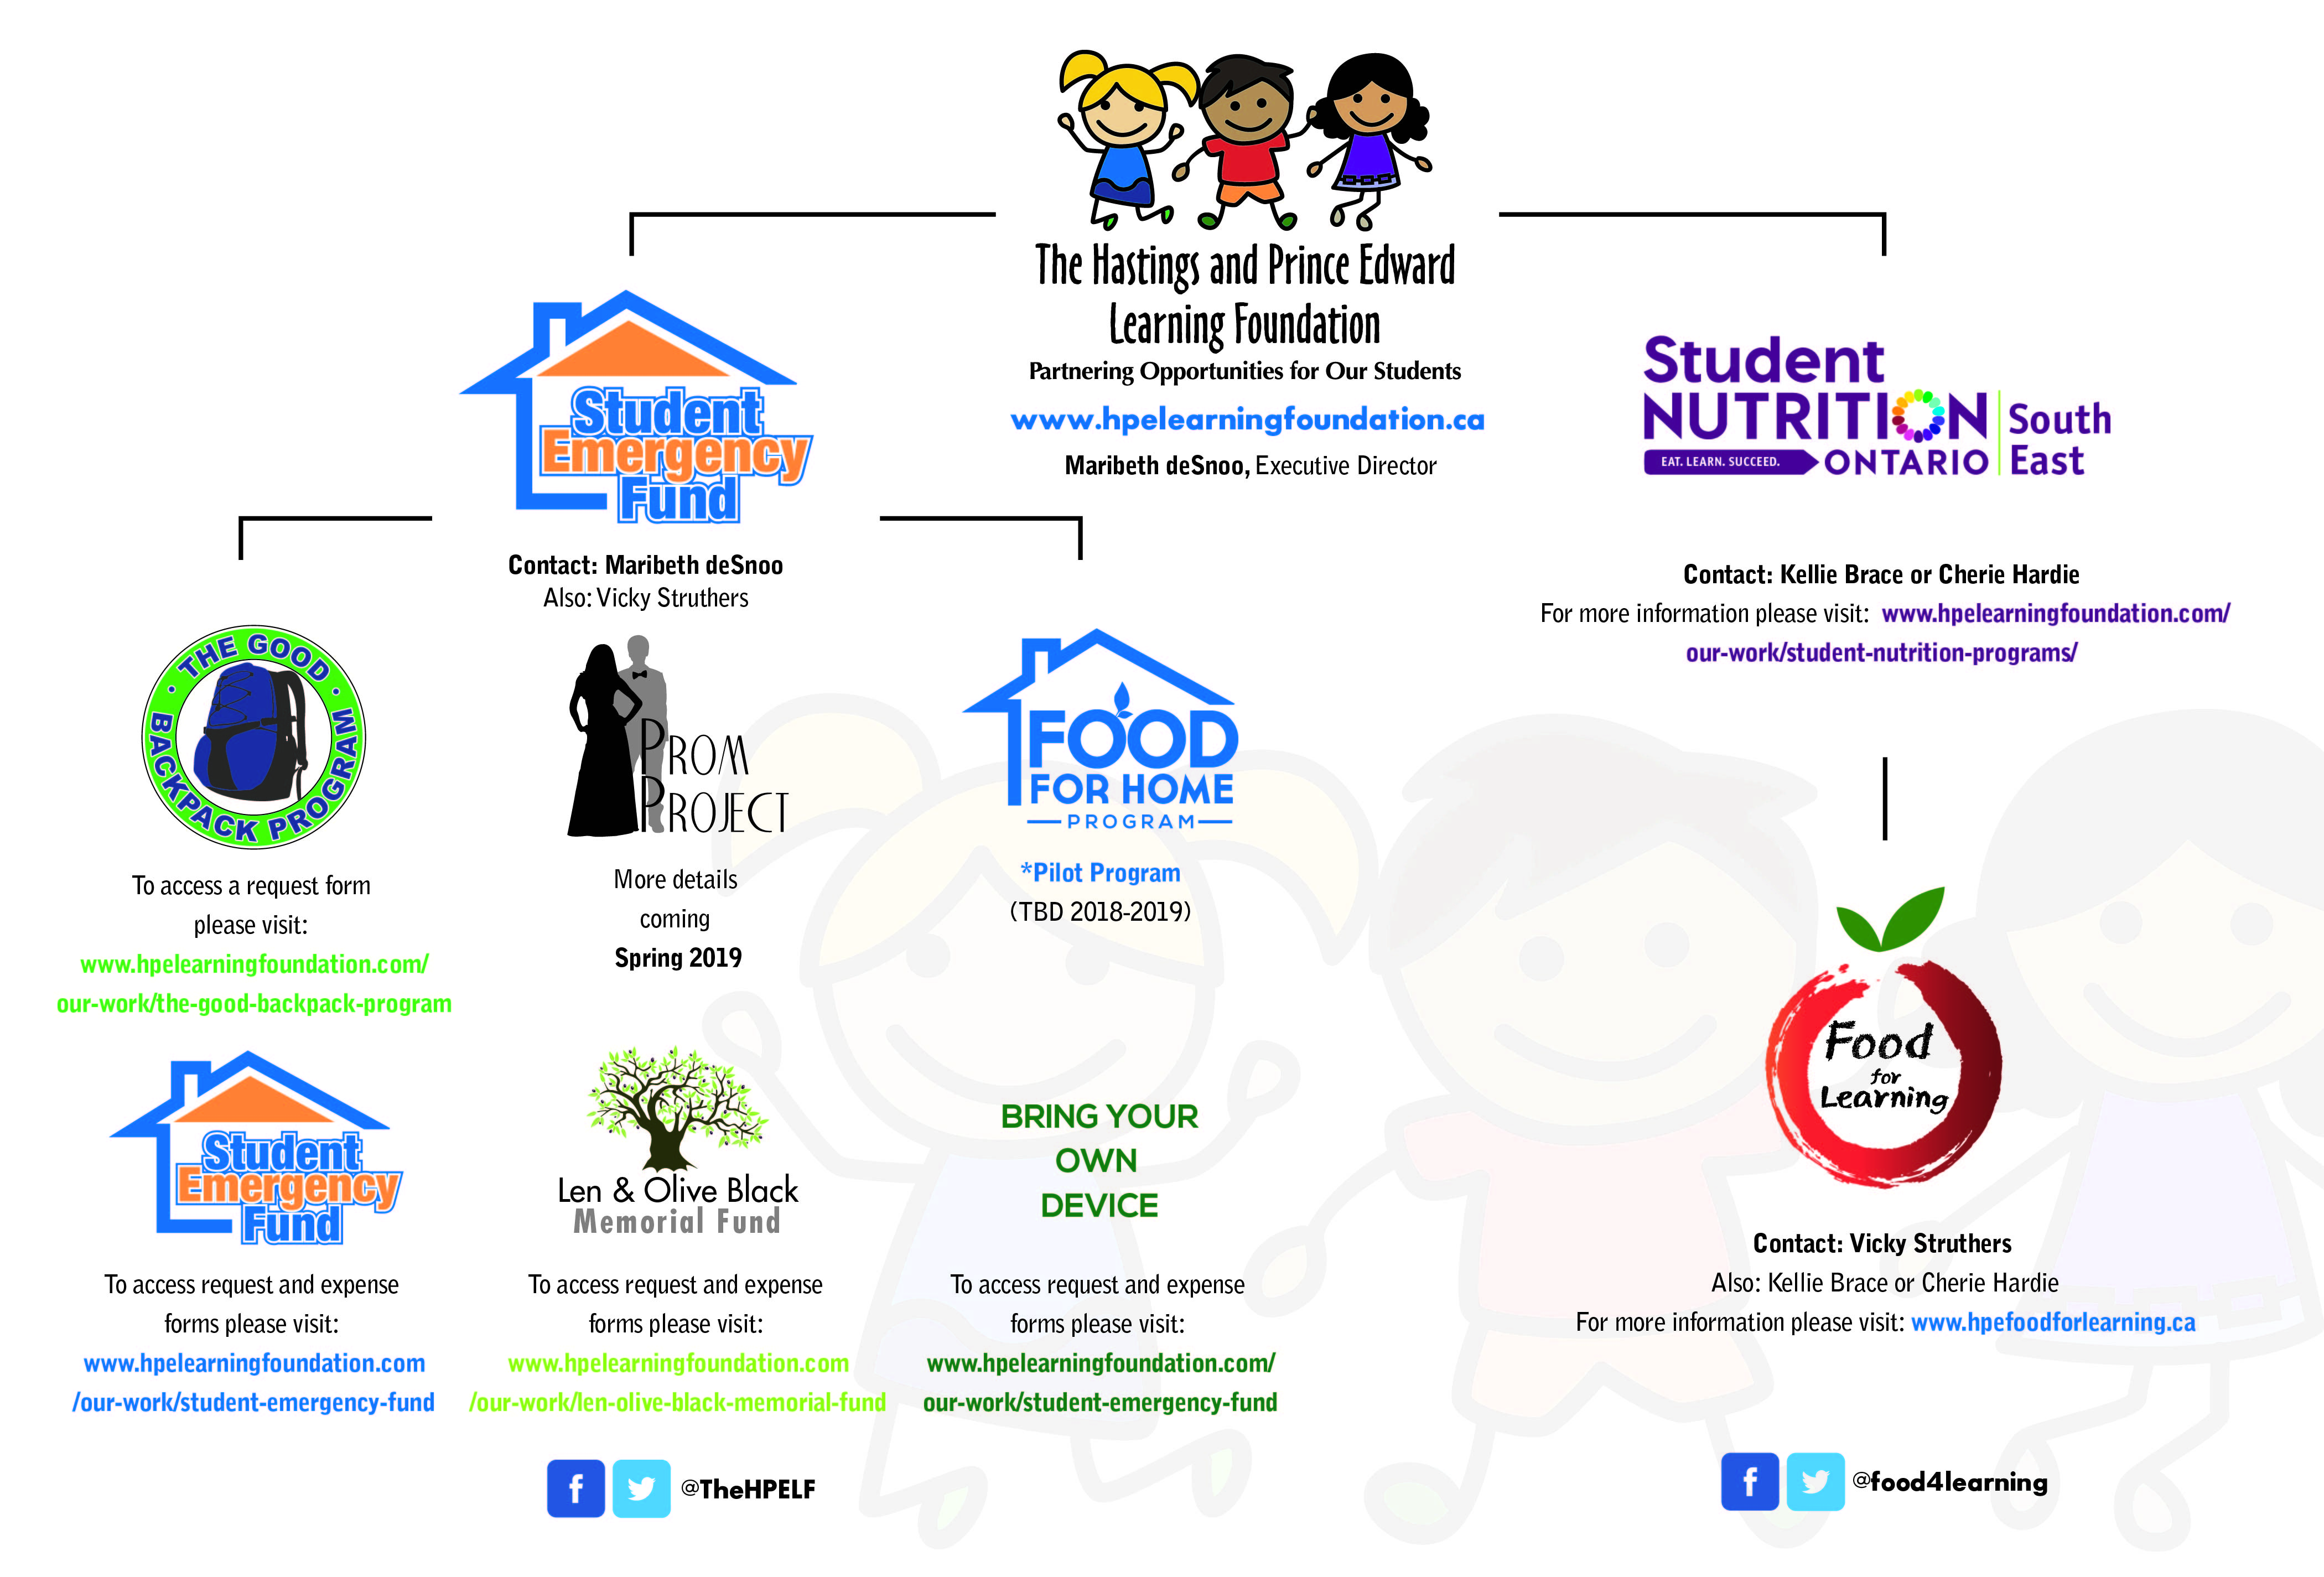 Our Programs Flow Chart 2018 The Hastings And Prince Edward